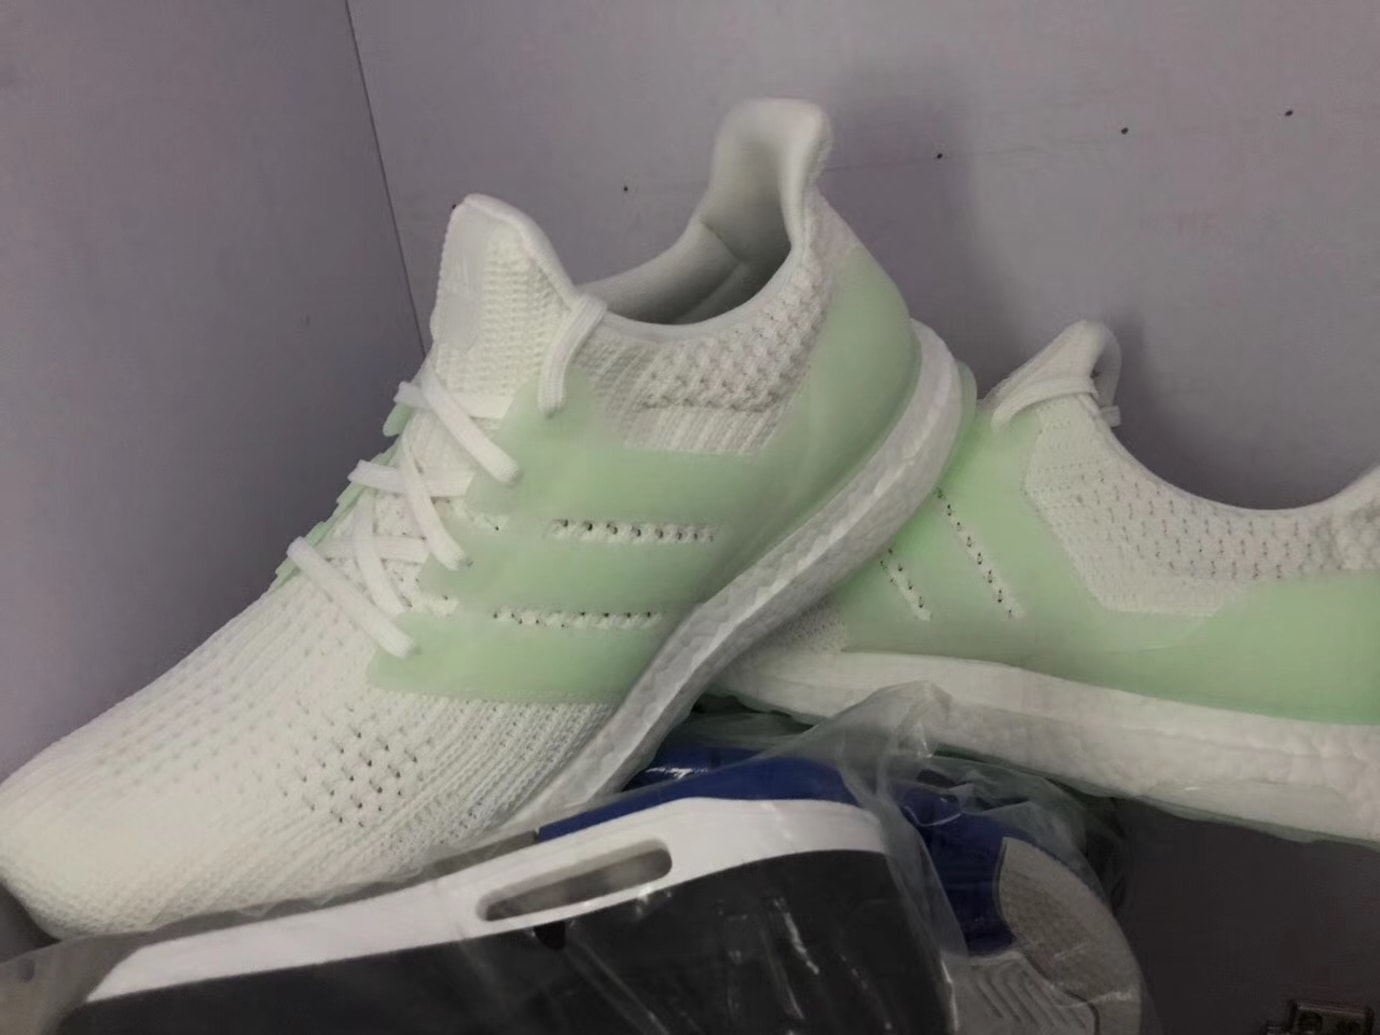 45b1faa9510 Adidas Ultra Boost 4.0 White Glow in the Dark Release Date Light